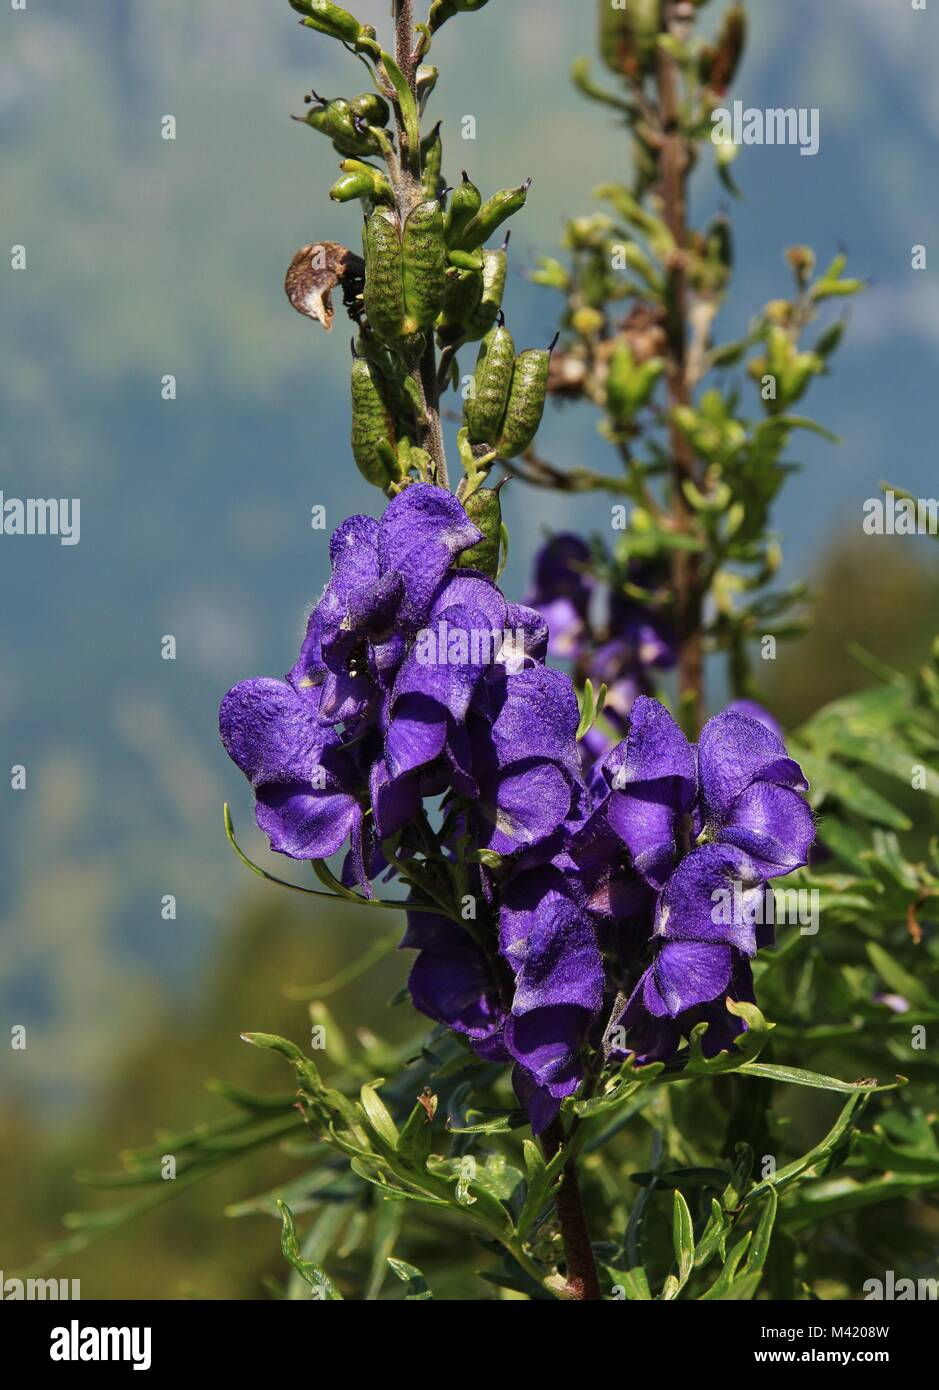 Monkshood Beautiful But Very Poisonous Flower Growing In The Alps